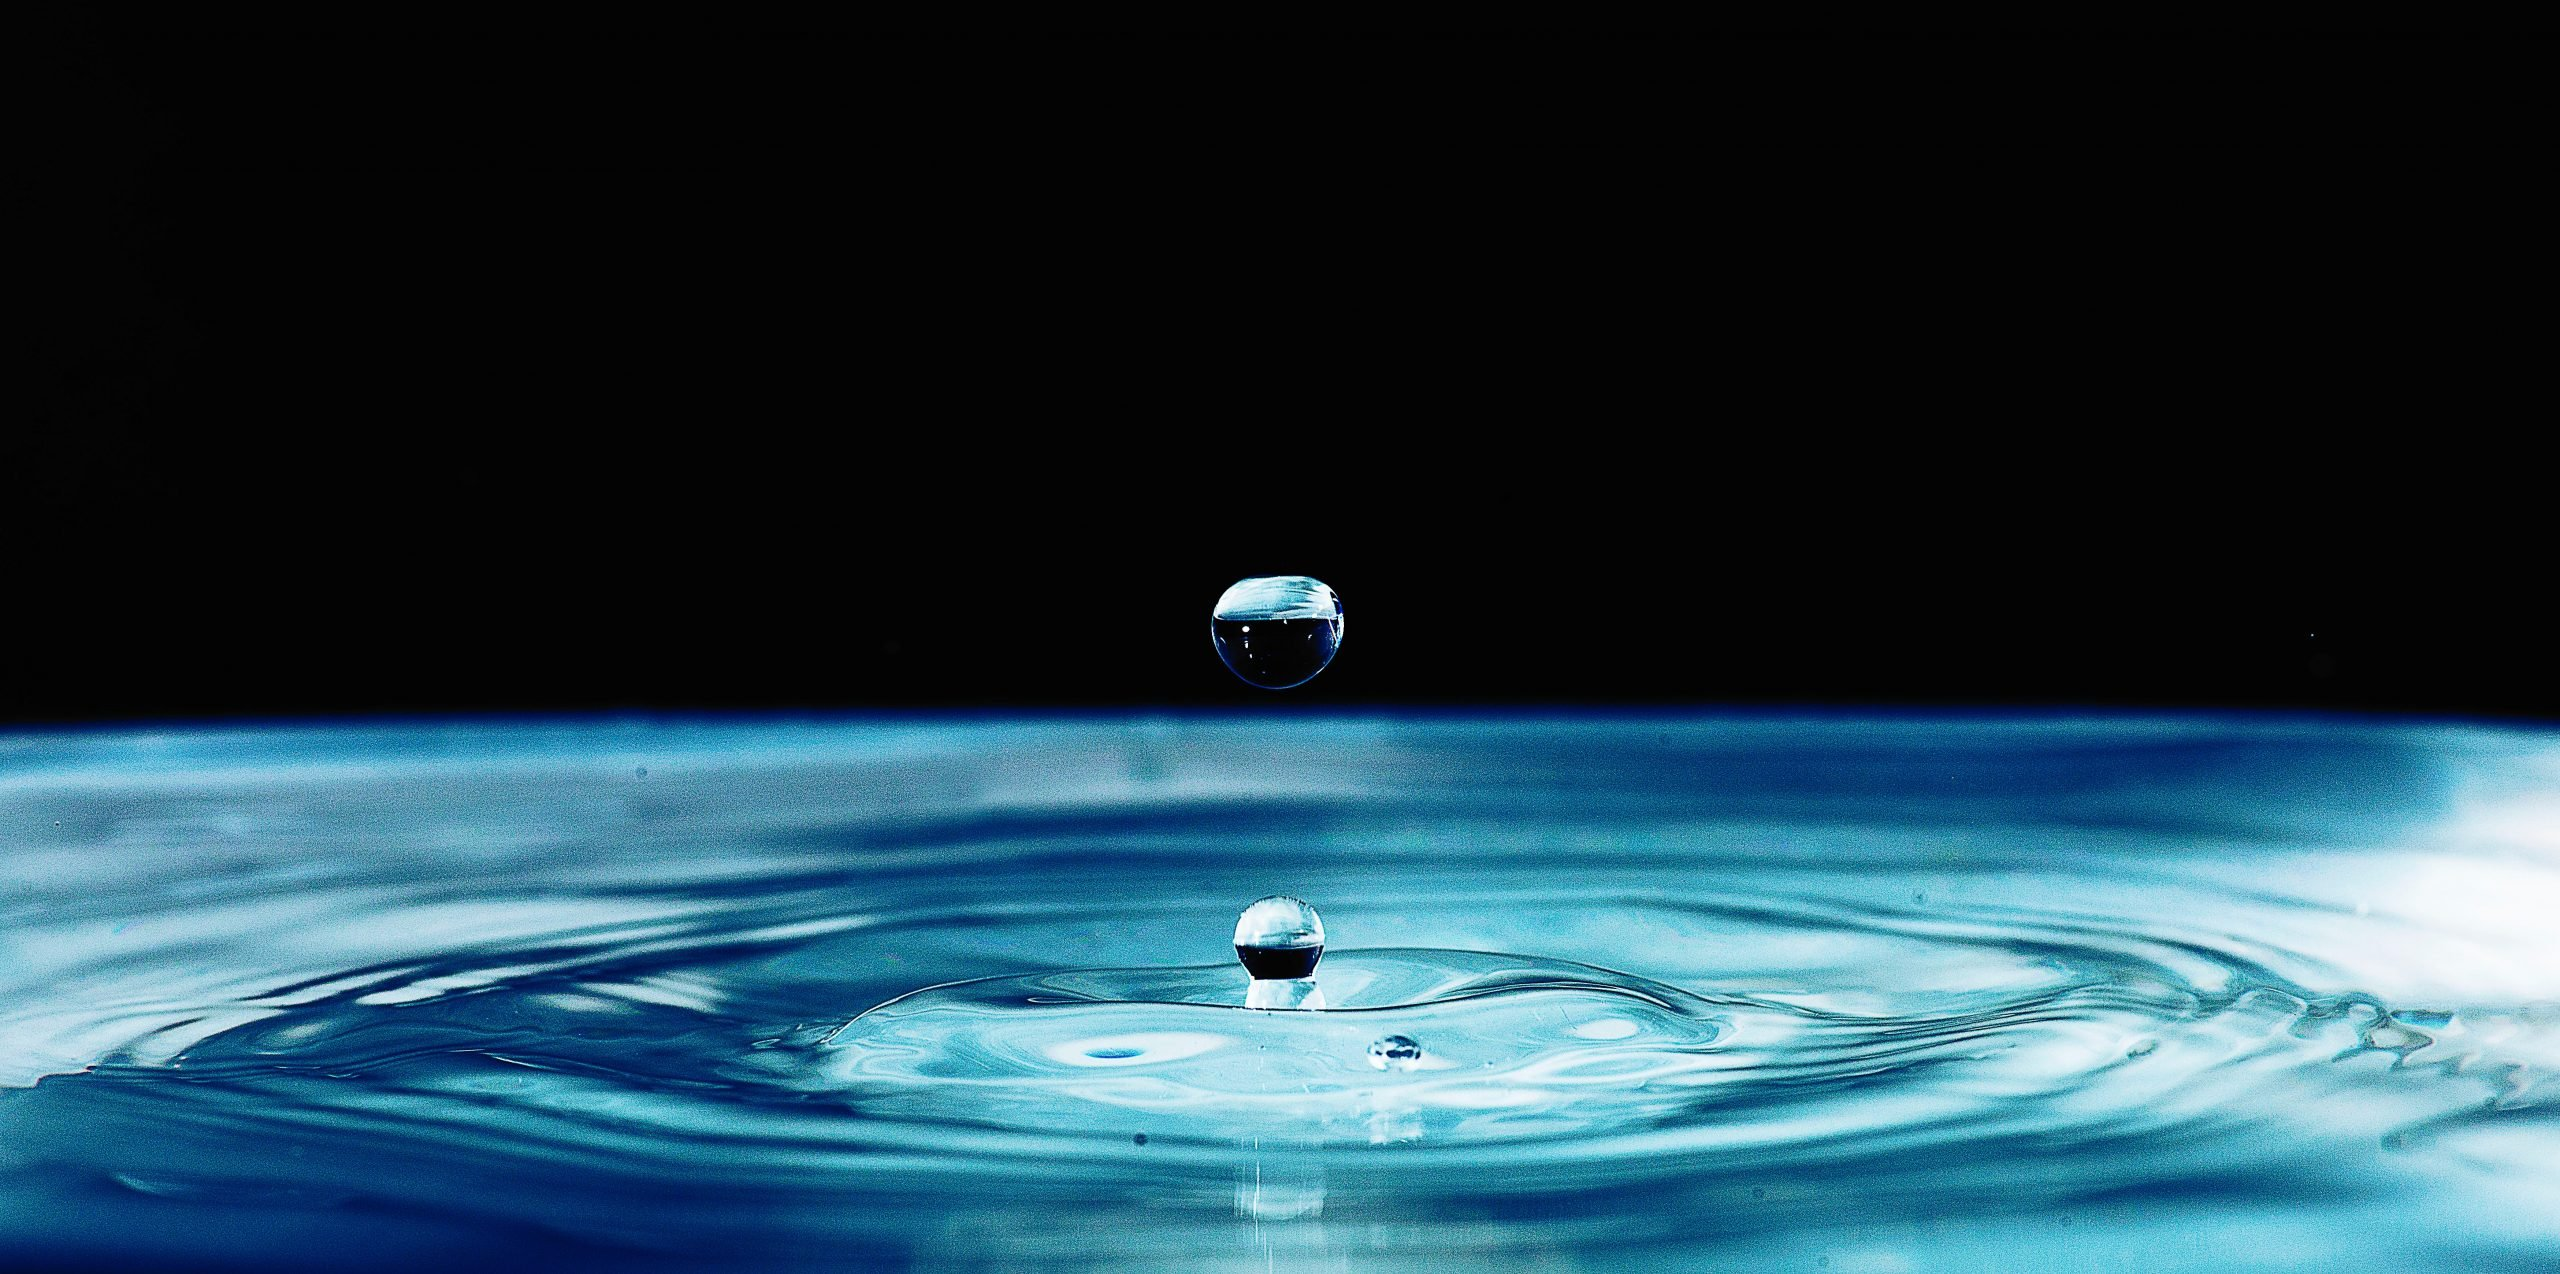 water droplets creating ripples